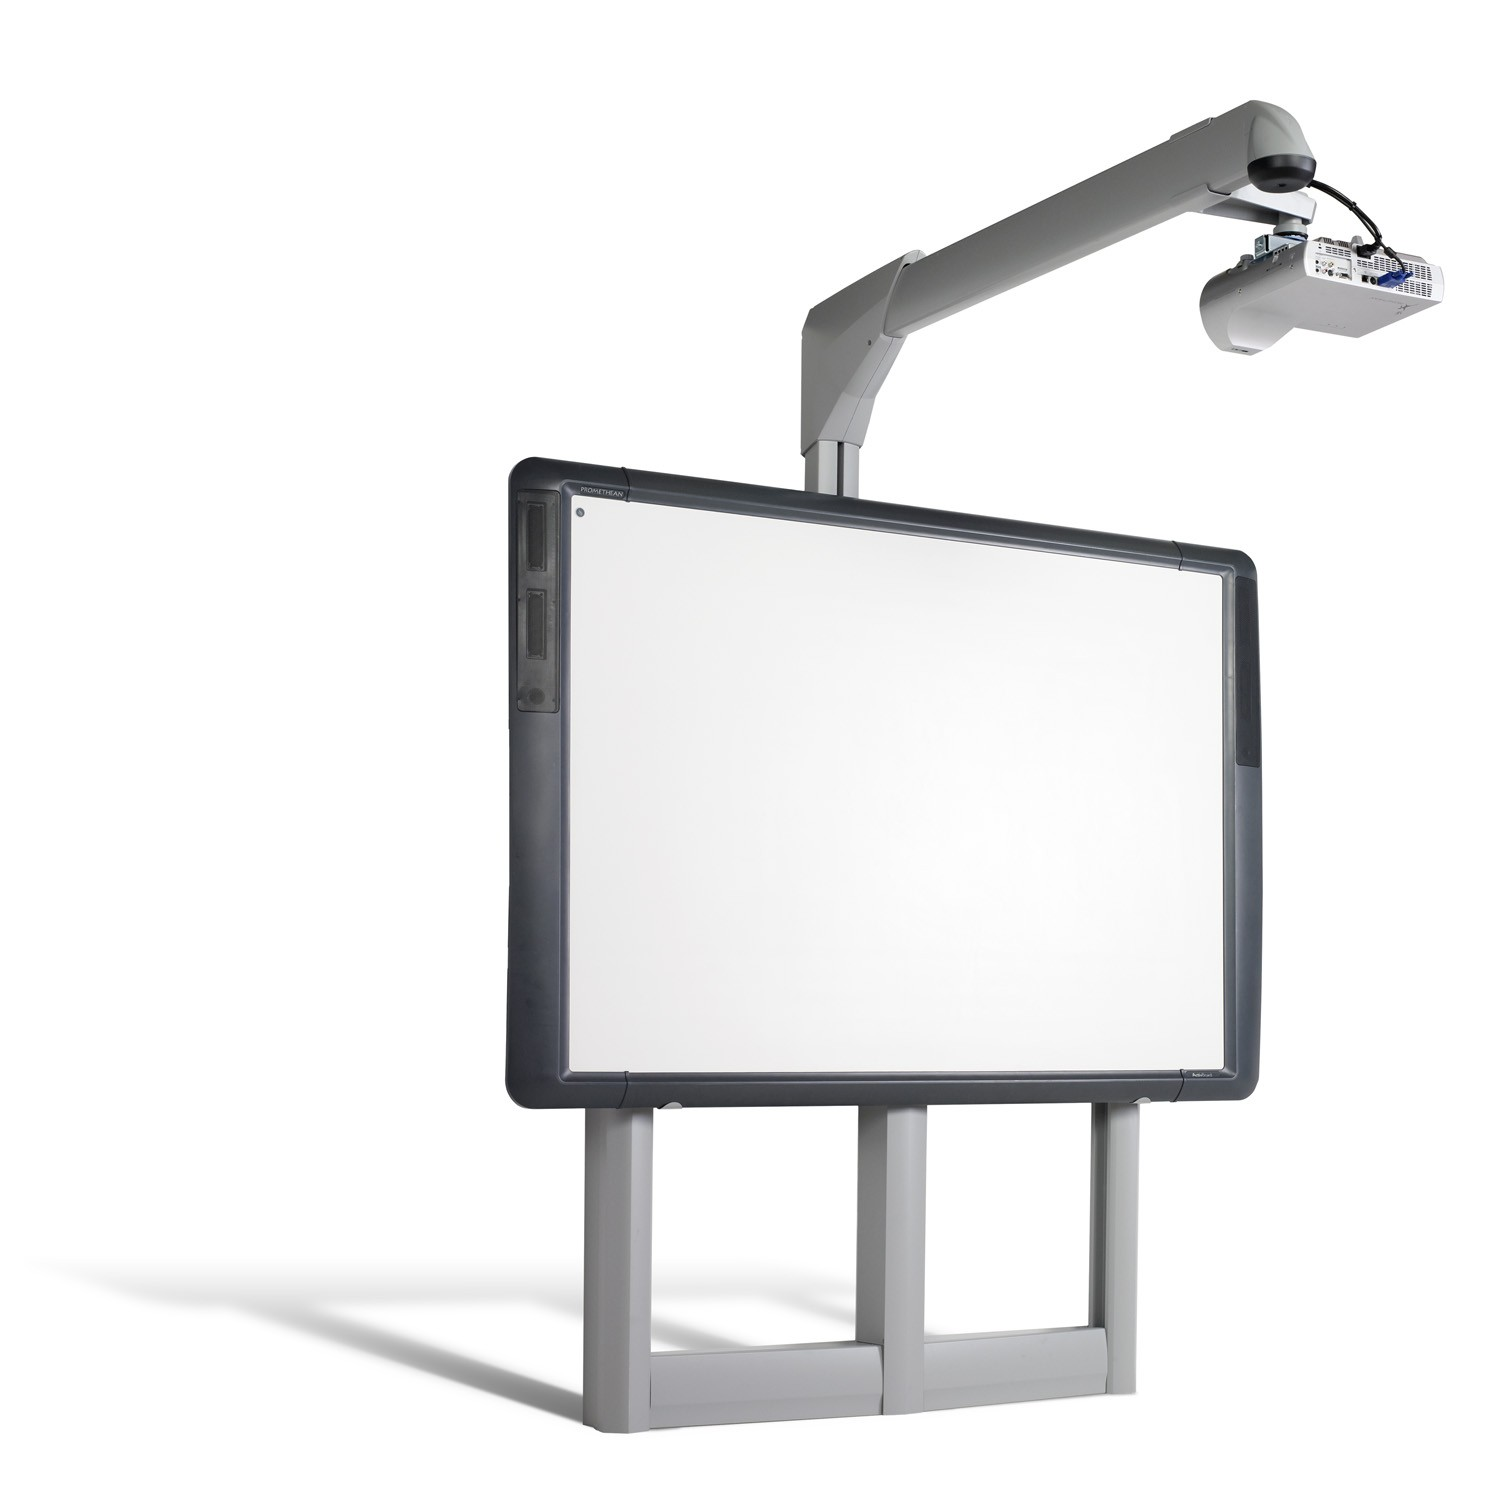 Data/video projector - SMART Board